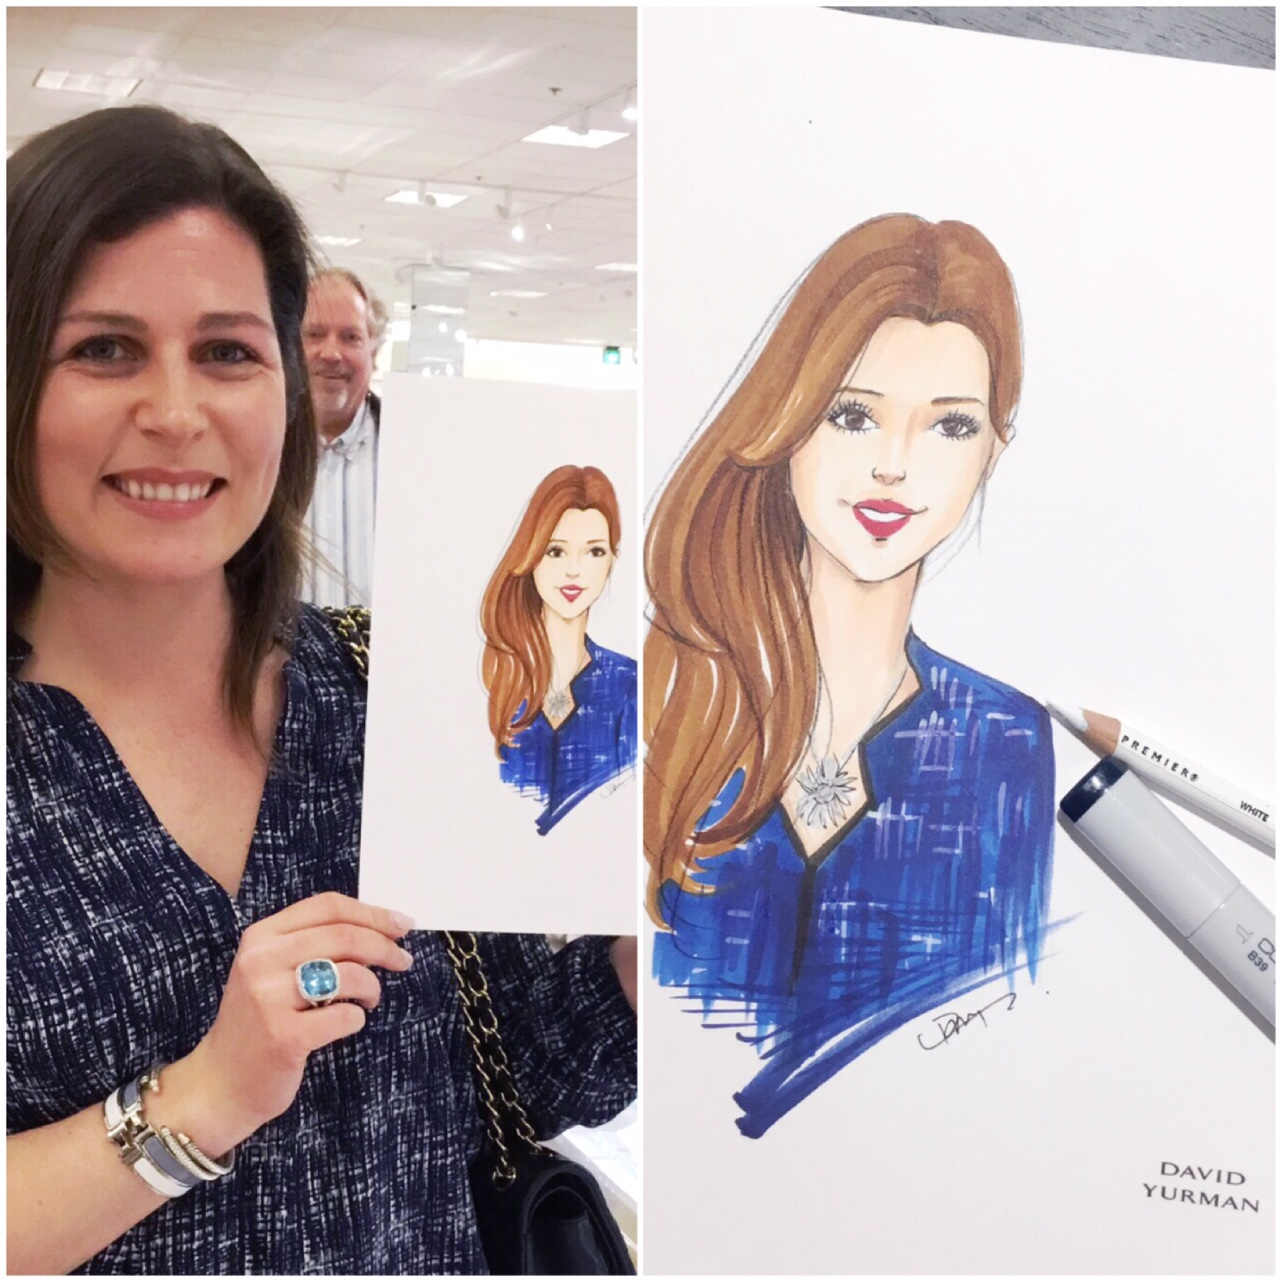 Live-sketch event for David Yurman Denver by Fashion illustrator Rongrong DeVoe